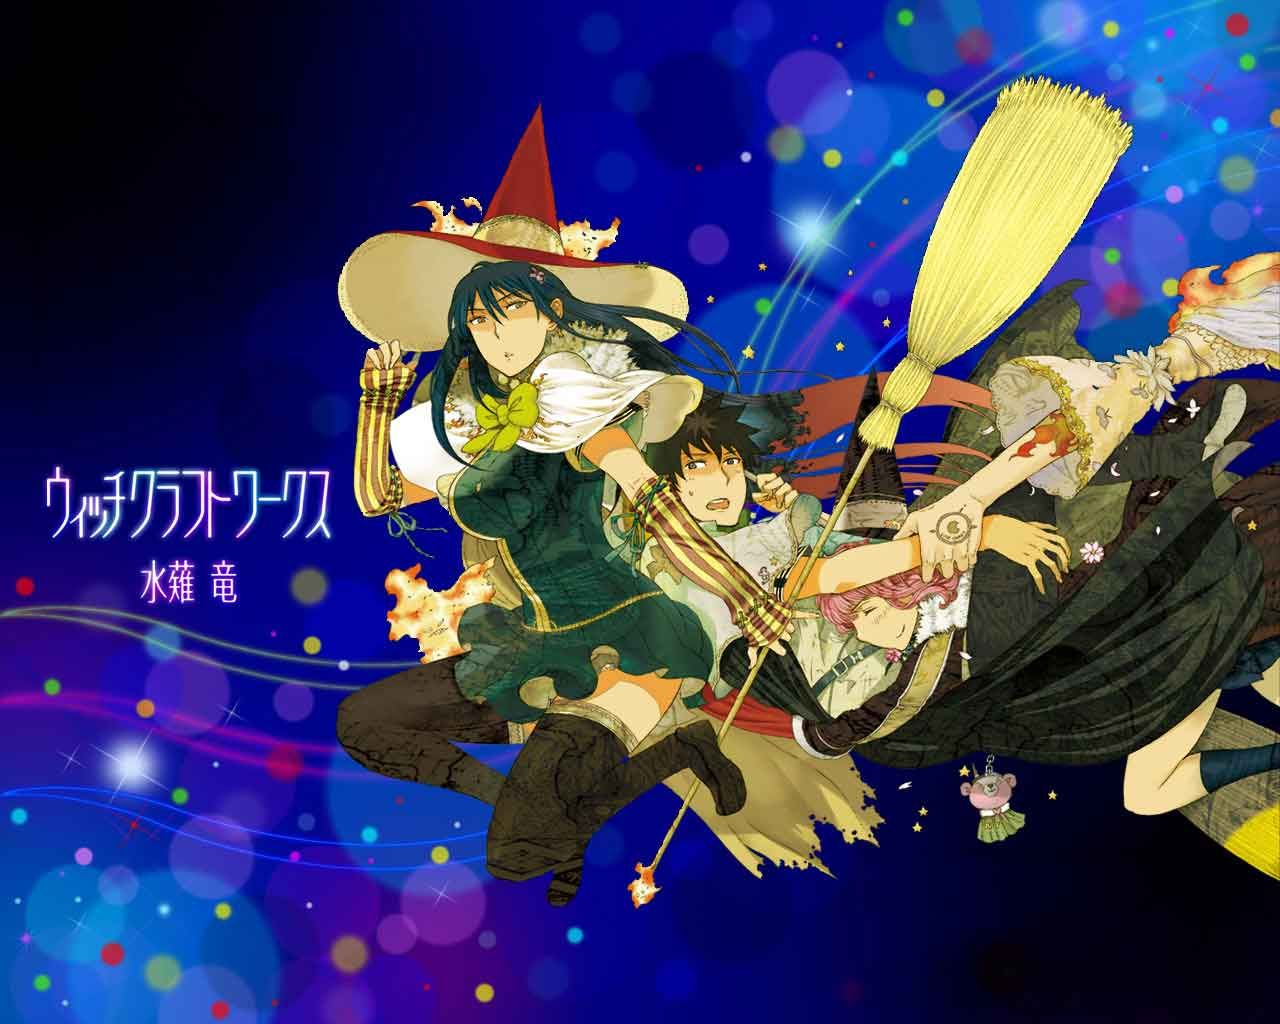 Witch Craft Works Wallpaper japanese drama, anime, movie